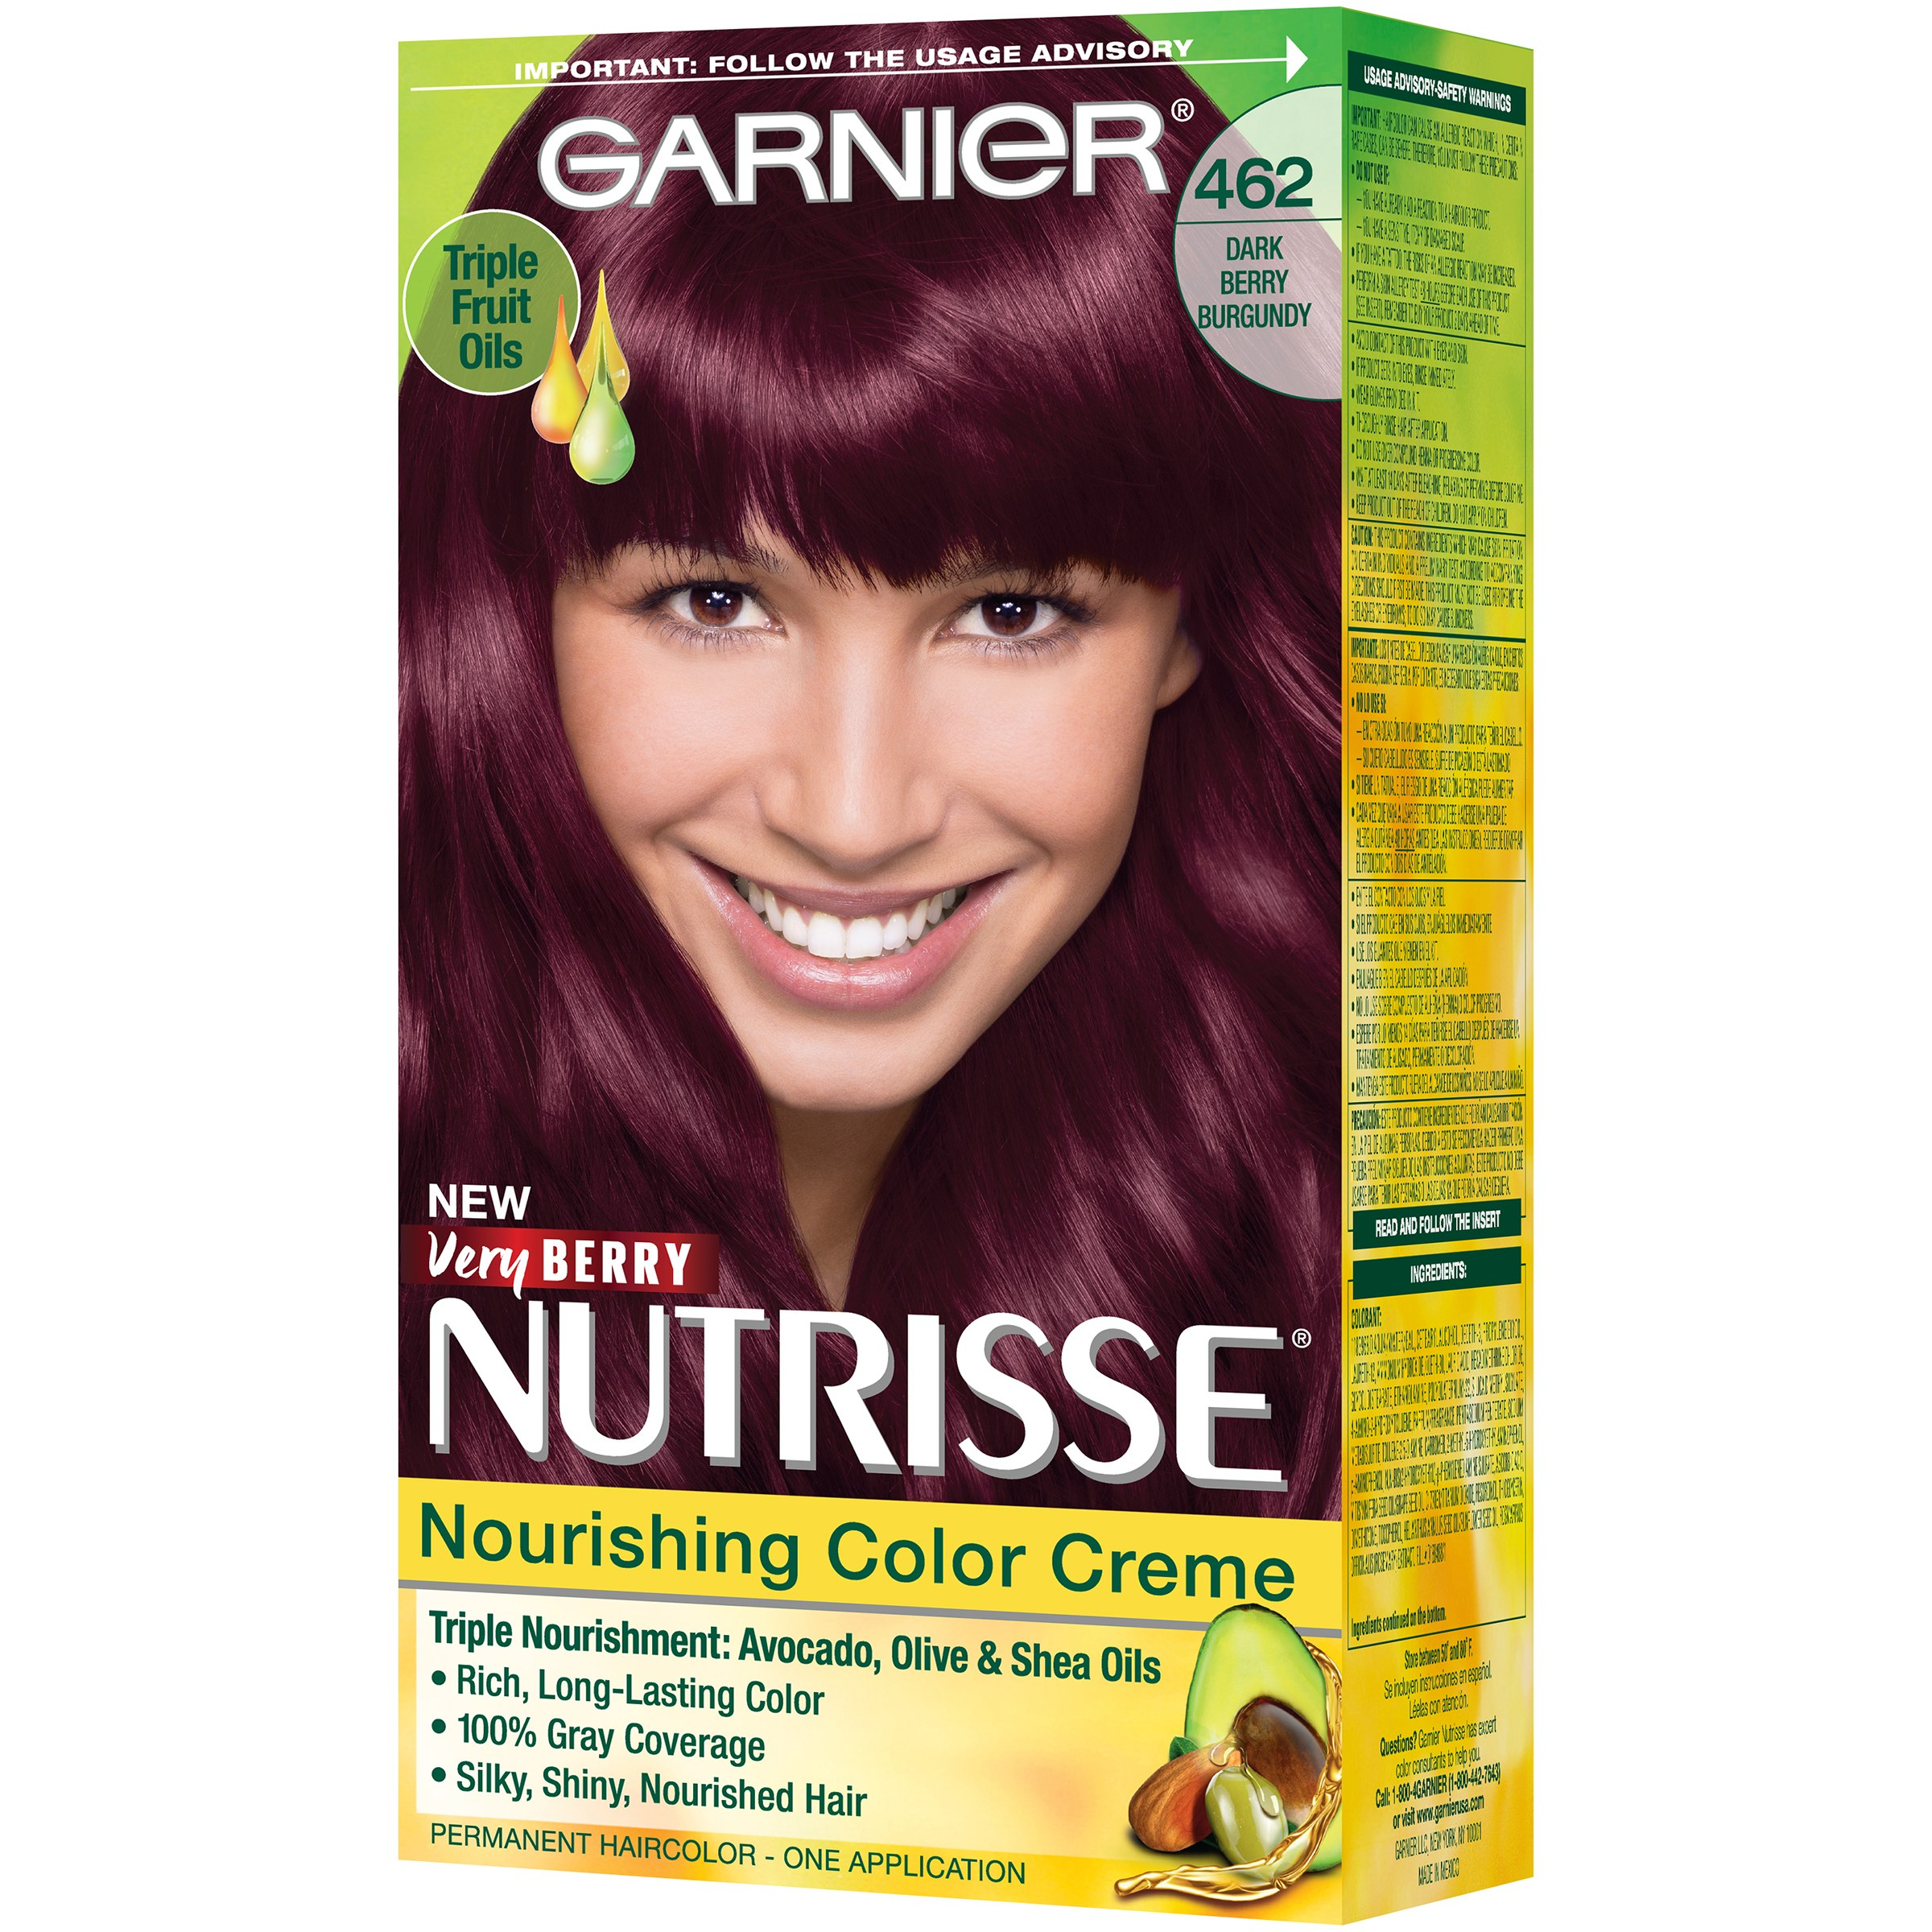 Garnier Nutrisse Nourishing Hair Color Creme Reds 42 Deep